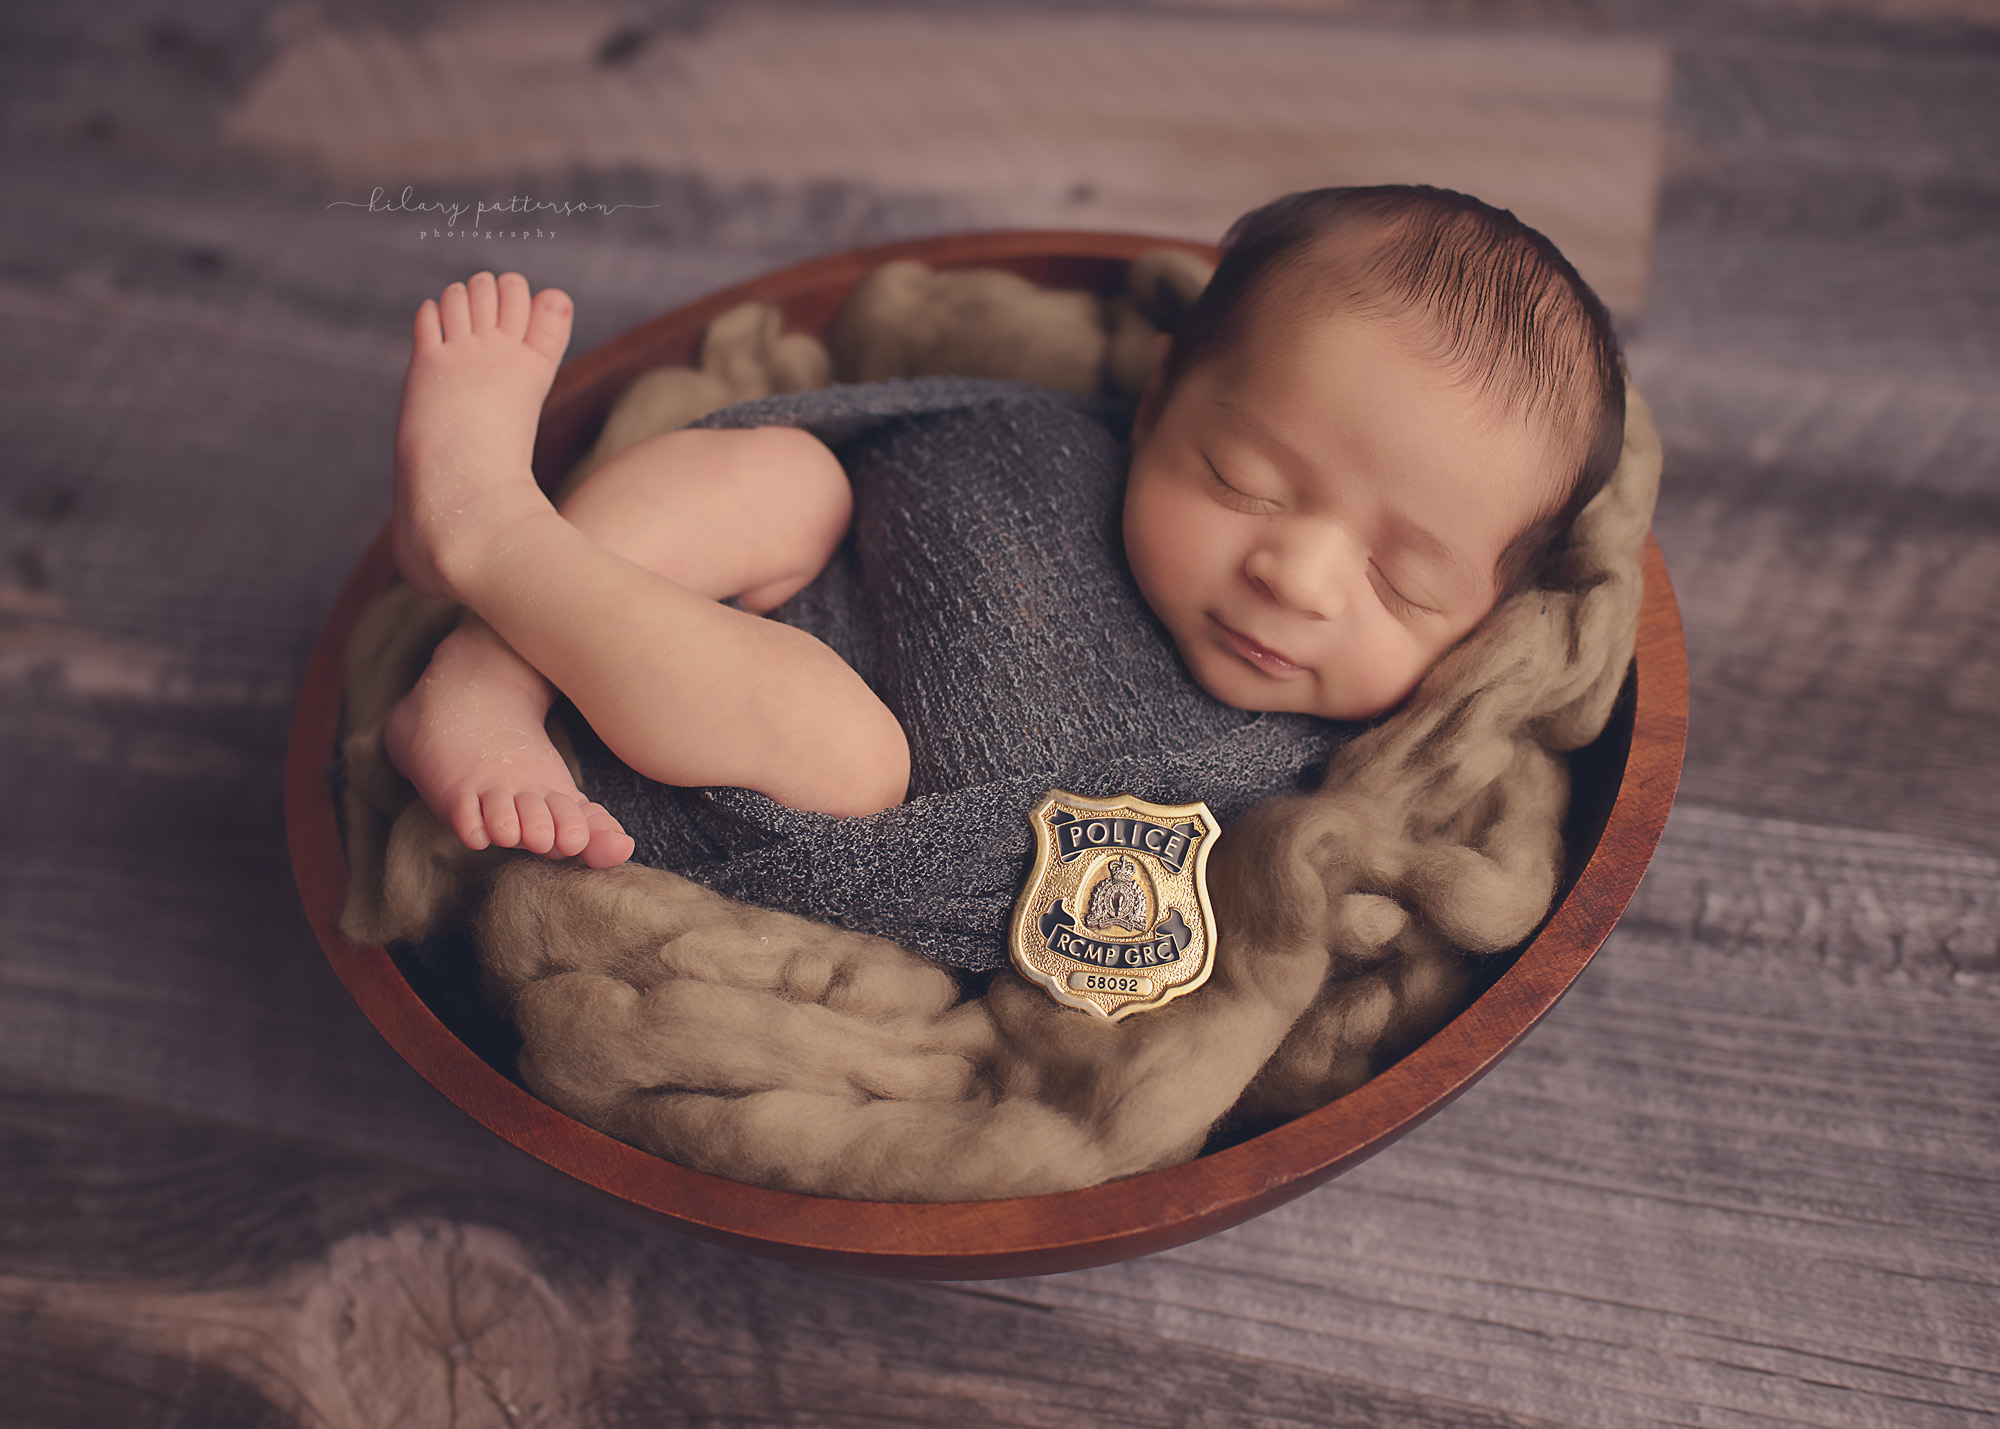 Newborn photography newborn boy photographer fraser valley vancouver hope chilliwack red serge police pose prop kamloops badge bowl hilary